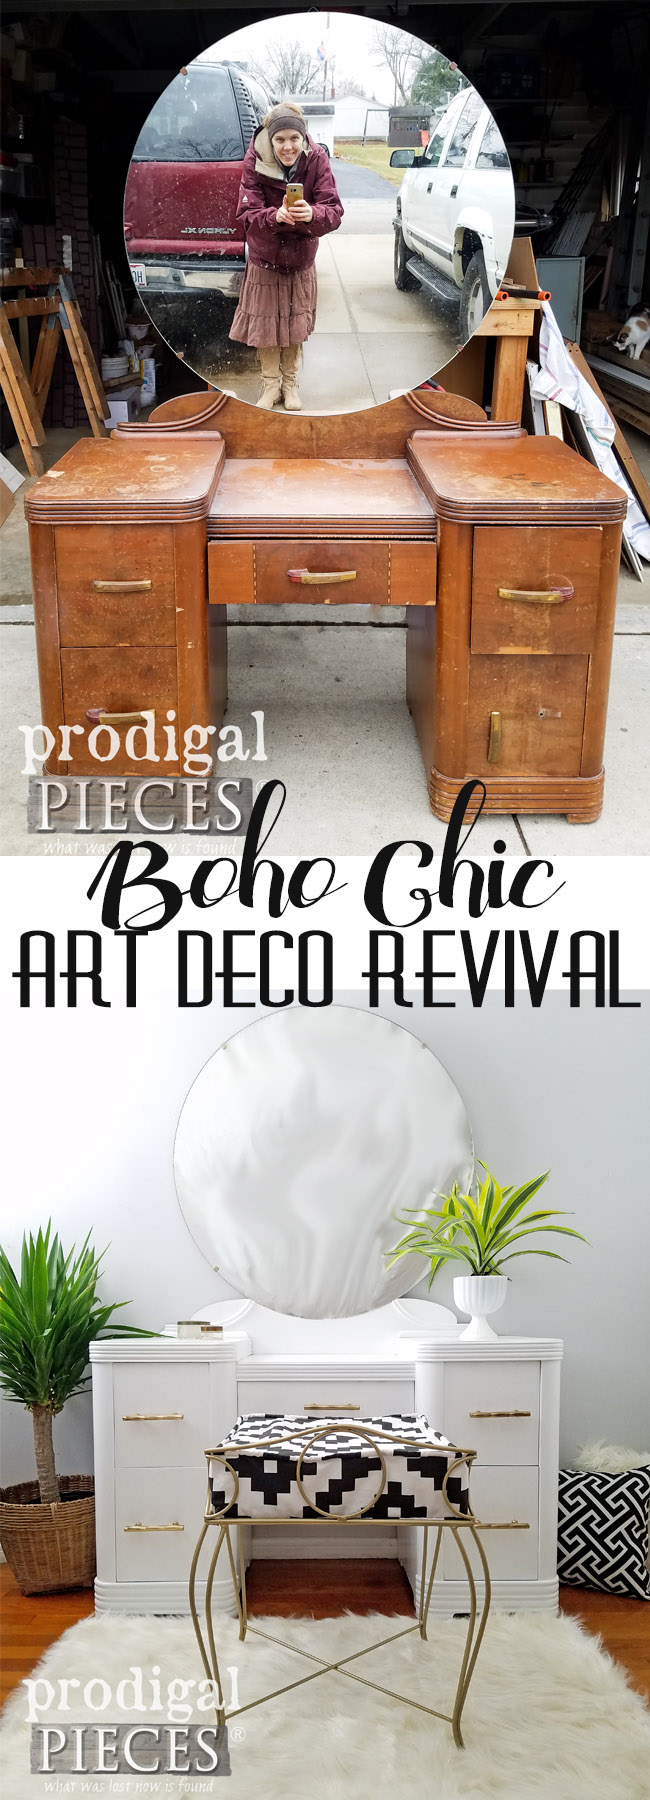 Oh my! This sad looking Art Deco vanity got a new lease on life with TLC by Larissa of Prodigal Pieces. Boho Chic is the new style and looks oh so good. DIY details at Prodigal Pieces | prodigalpieces.com